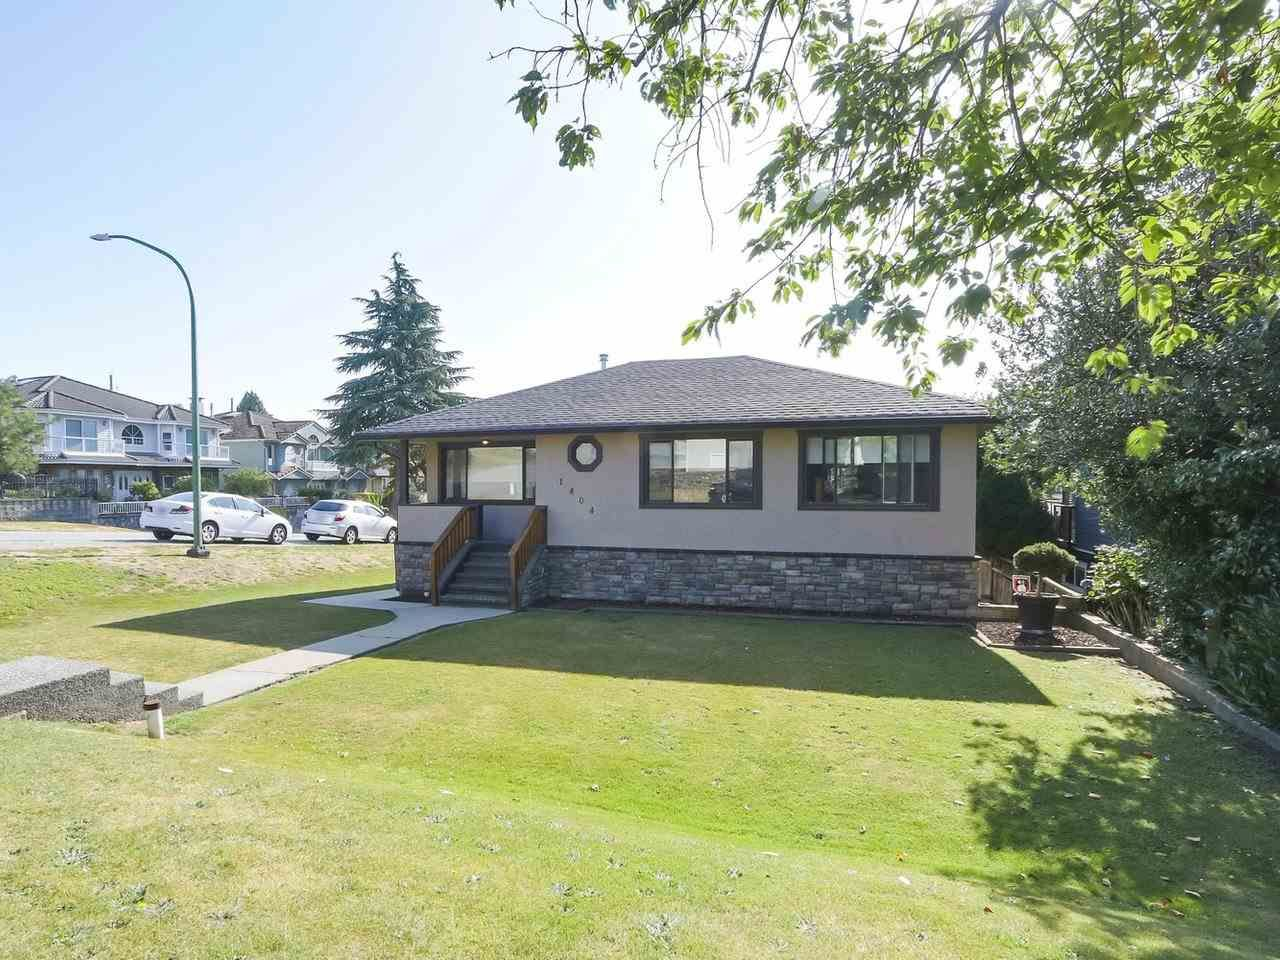 Main Photo: 1404 DENT Avenue in Burnaby: Willingdon Heights House for sale (Burnaby North)  : MLS®# R2394613